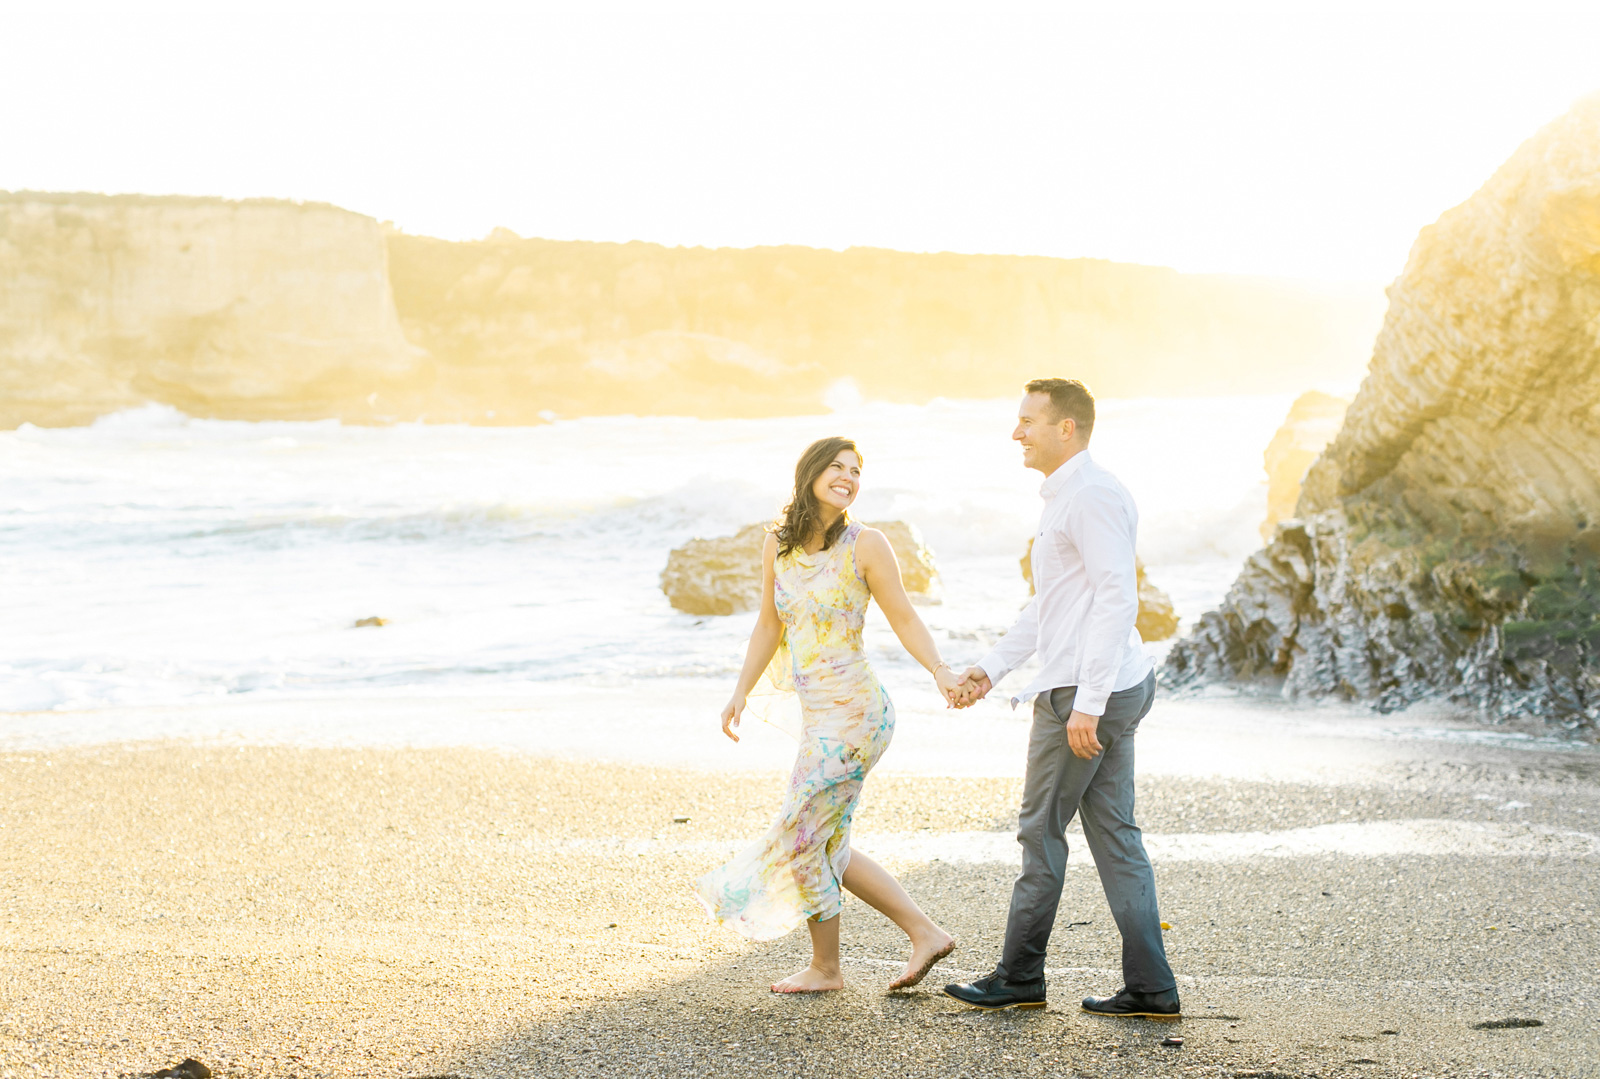 Malibu-Wedding-Photographer-Fine-Art-Photography-Professional-Wedding-Photography-Ocean-Engagement-Natalie-Schutt-Photography_06.jpg